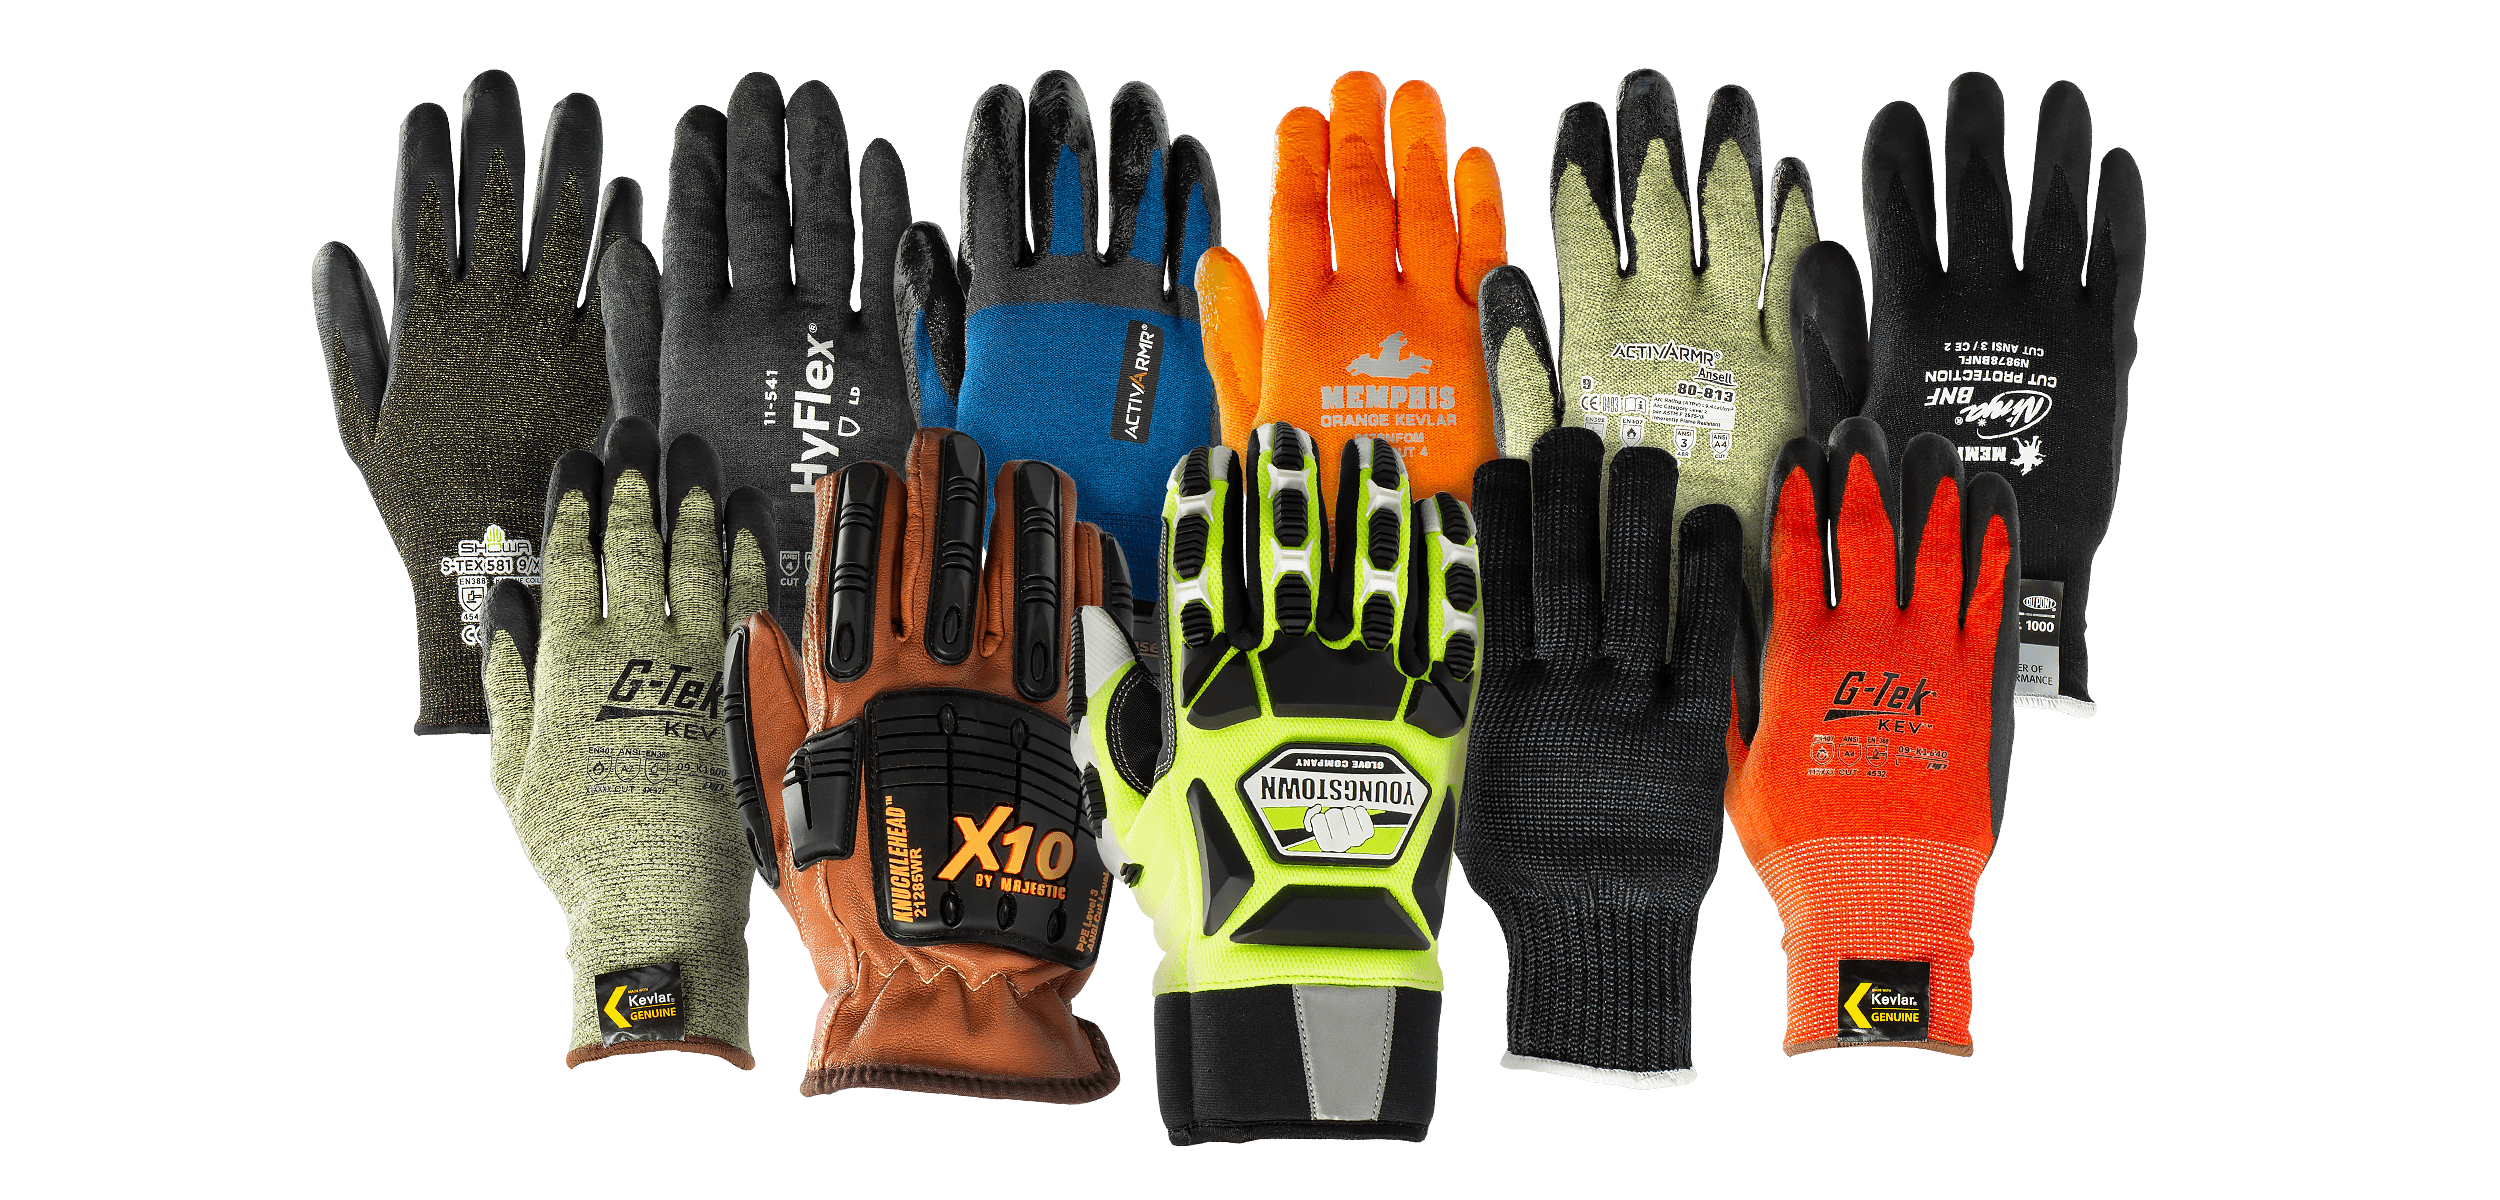 Kevlar is available in a variety of colors—giving you even more options